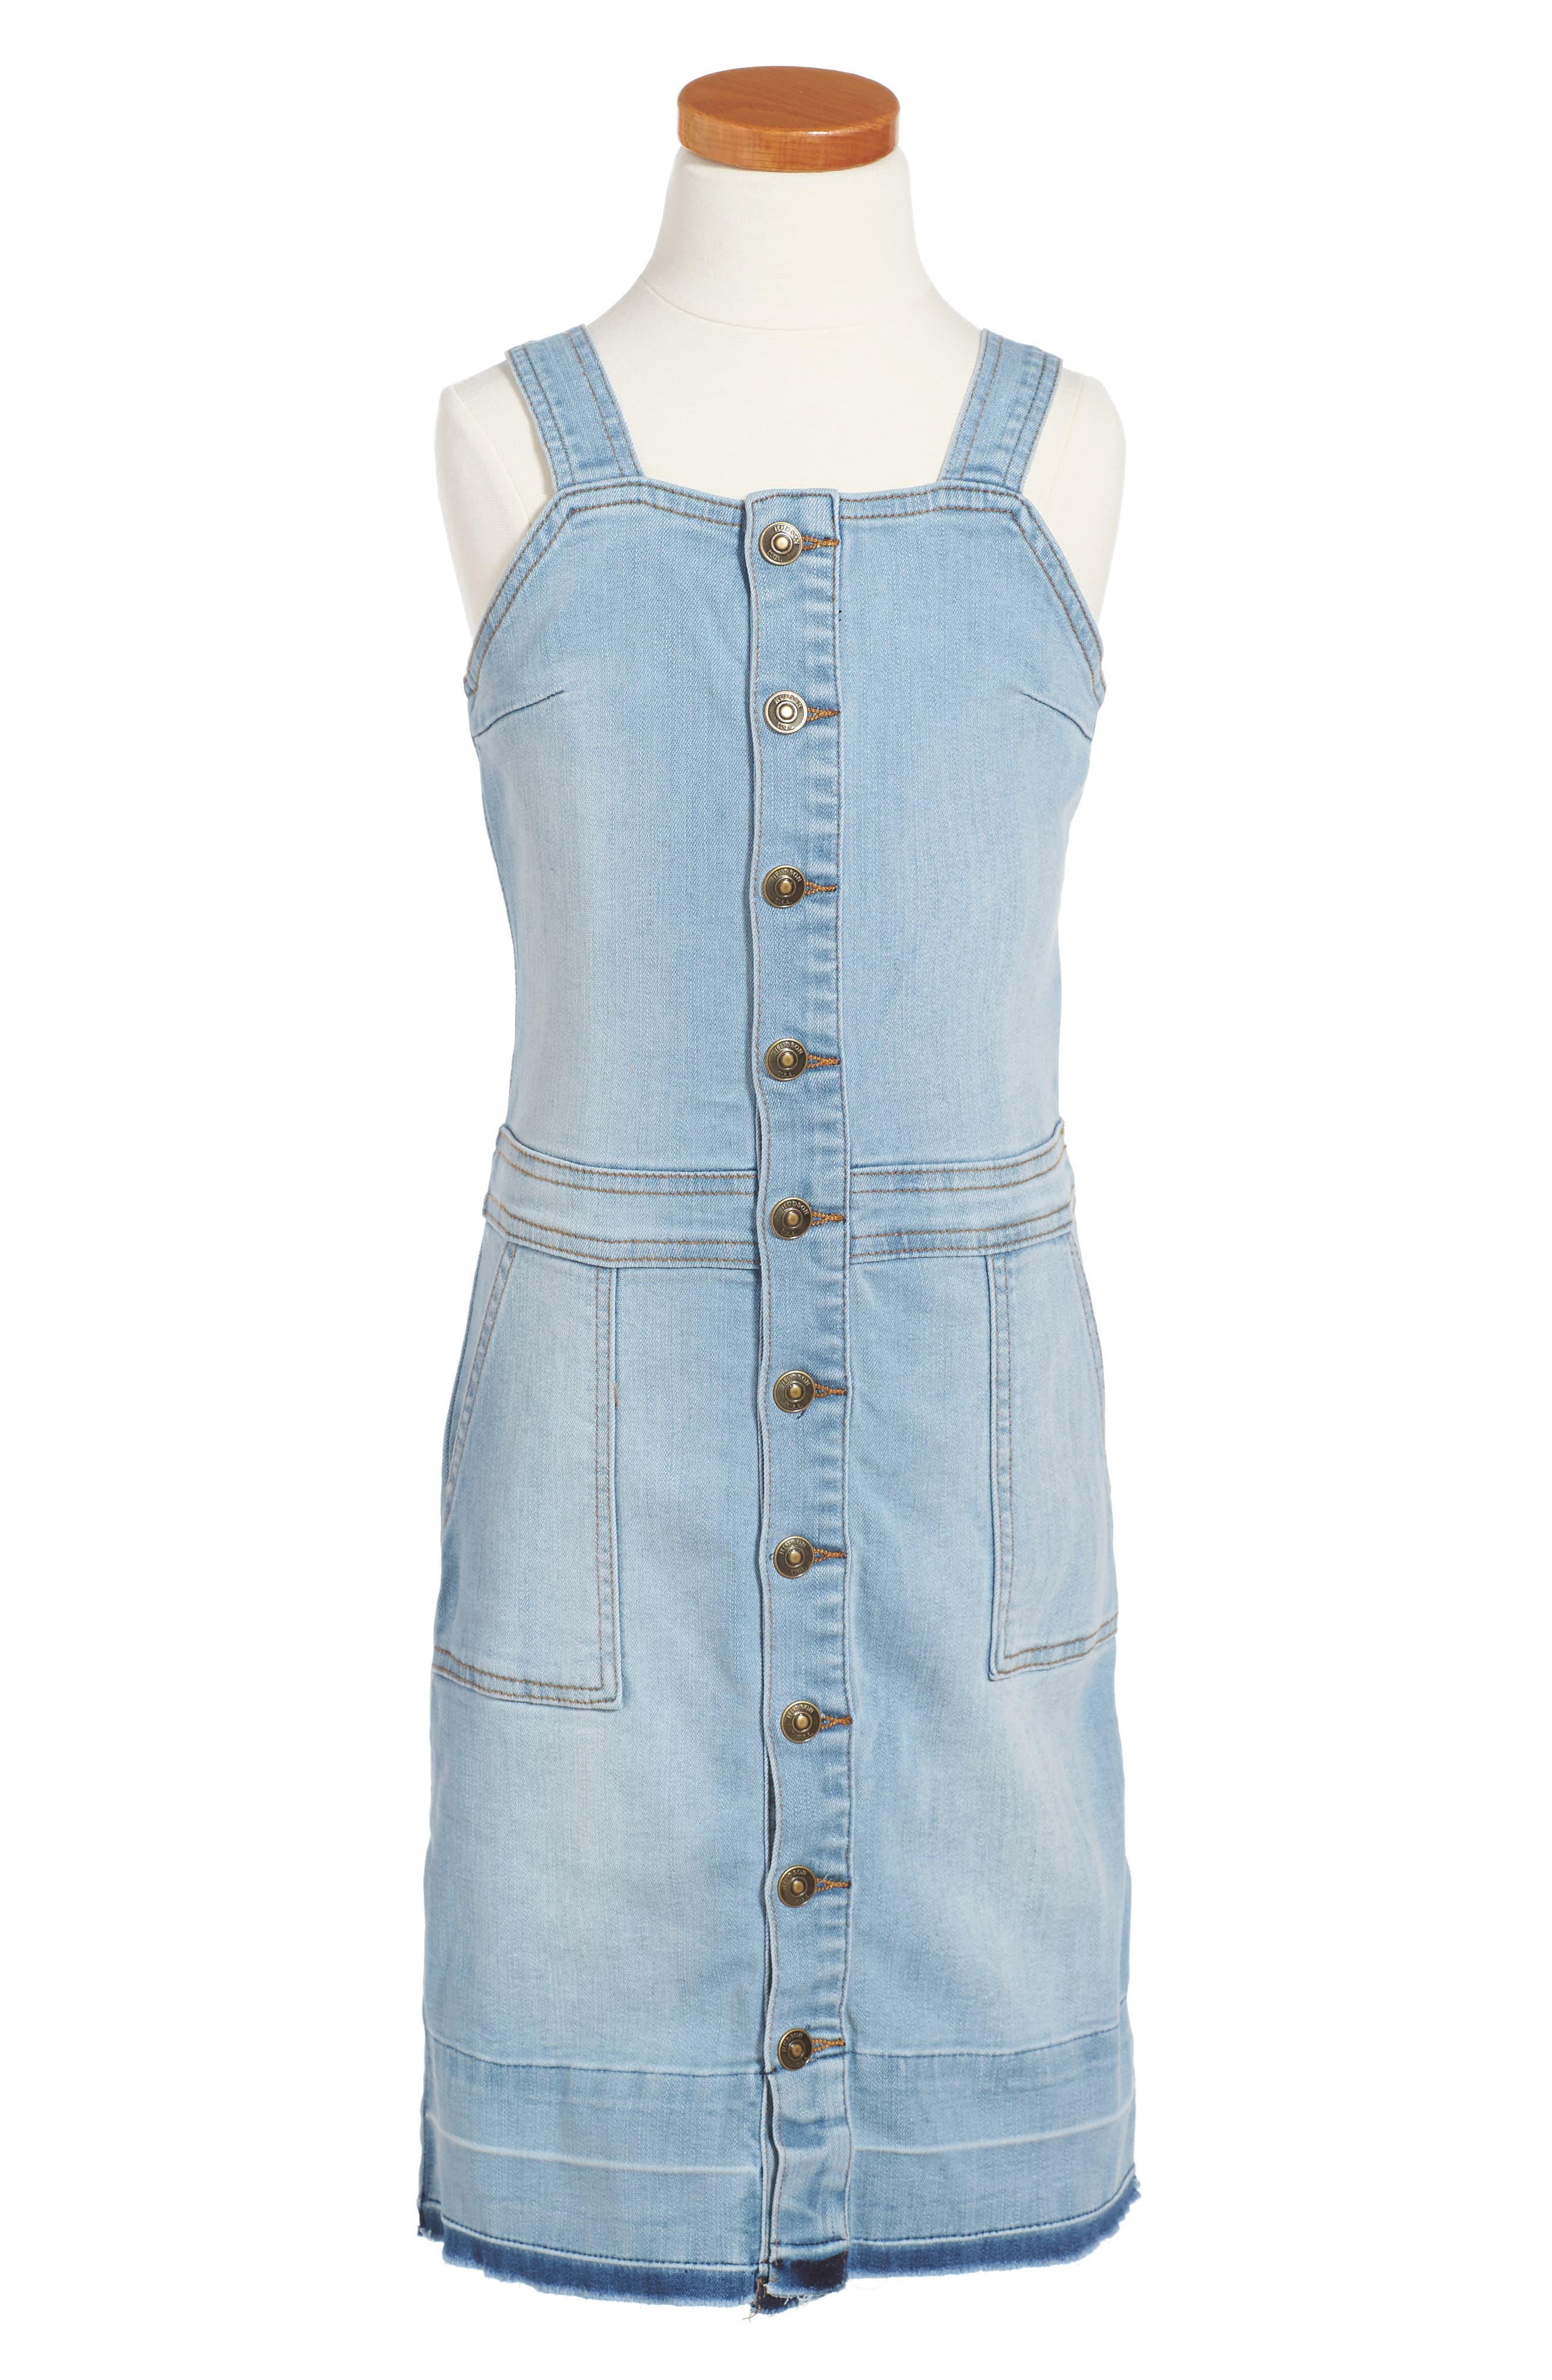 Alternate Image 1 Selected - Hudson Kids Kelly Denim Overall Dress (Big Girls)